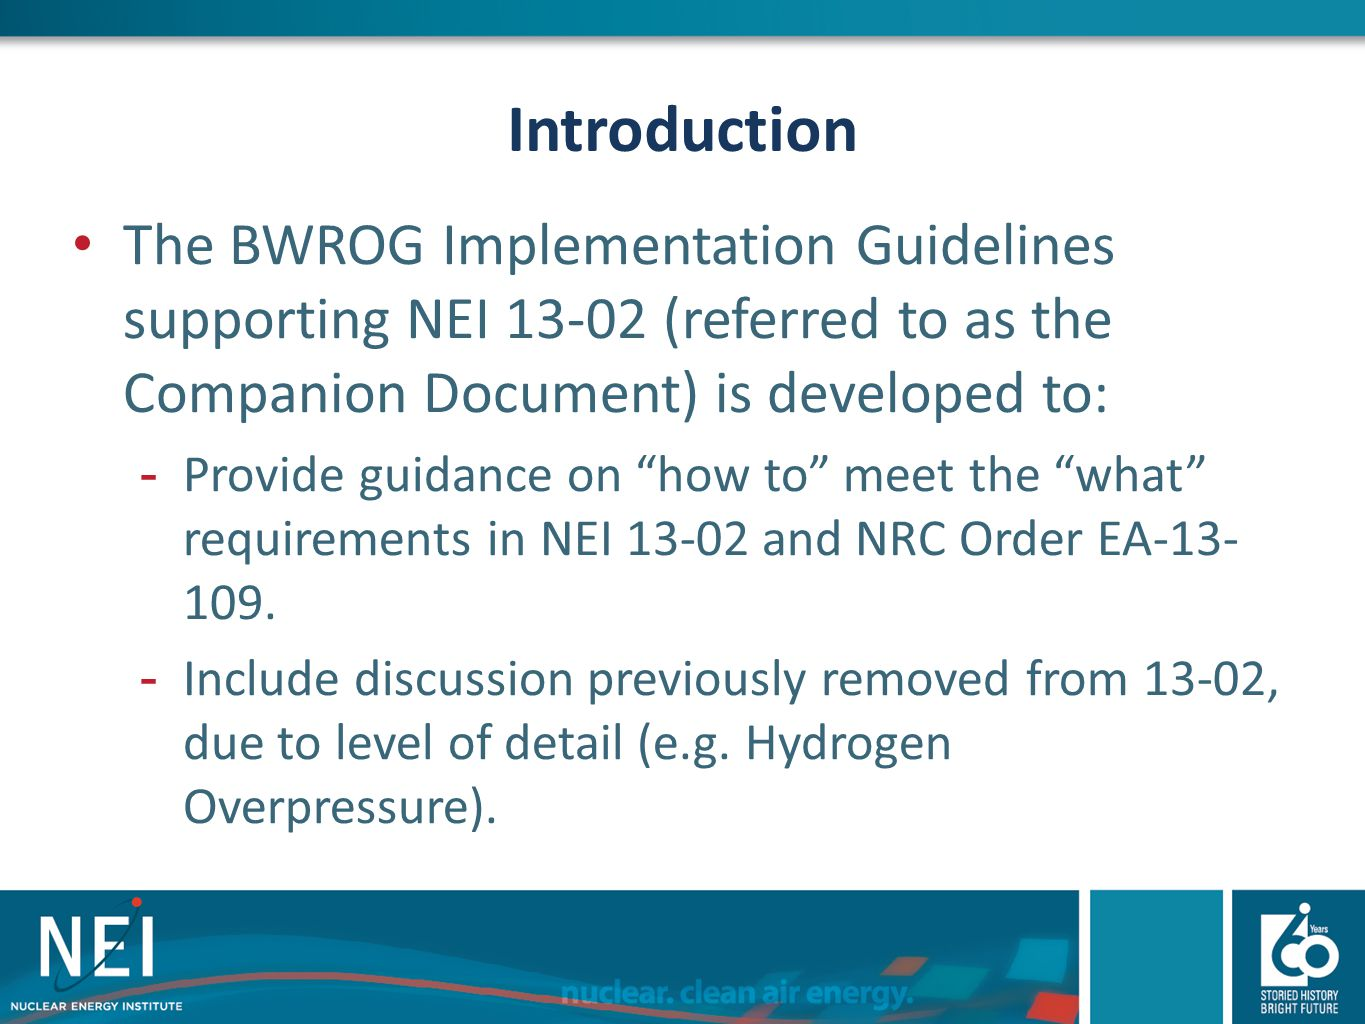 Introduction The BWROG Implementation Guidelines supporting NEI 13-02 (referred to as the Companion Document) is developed to: